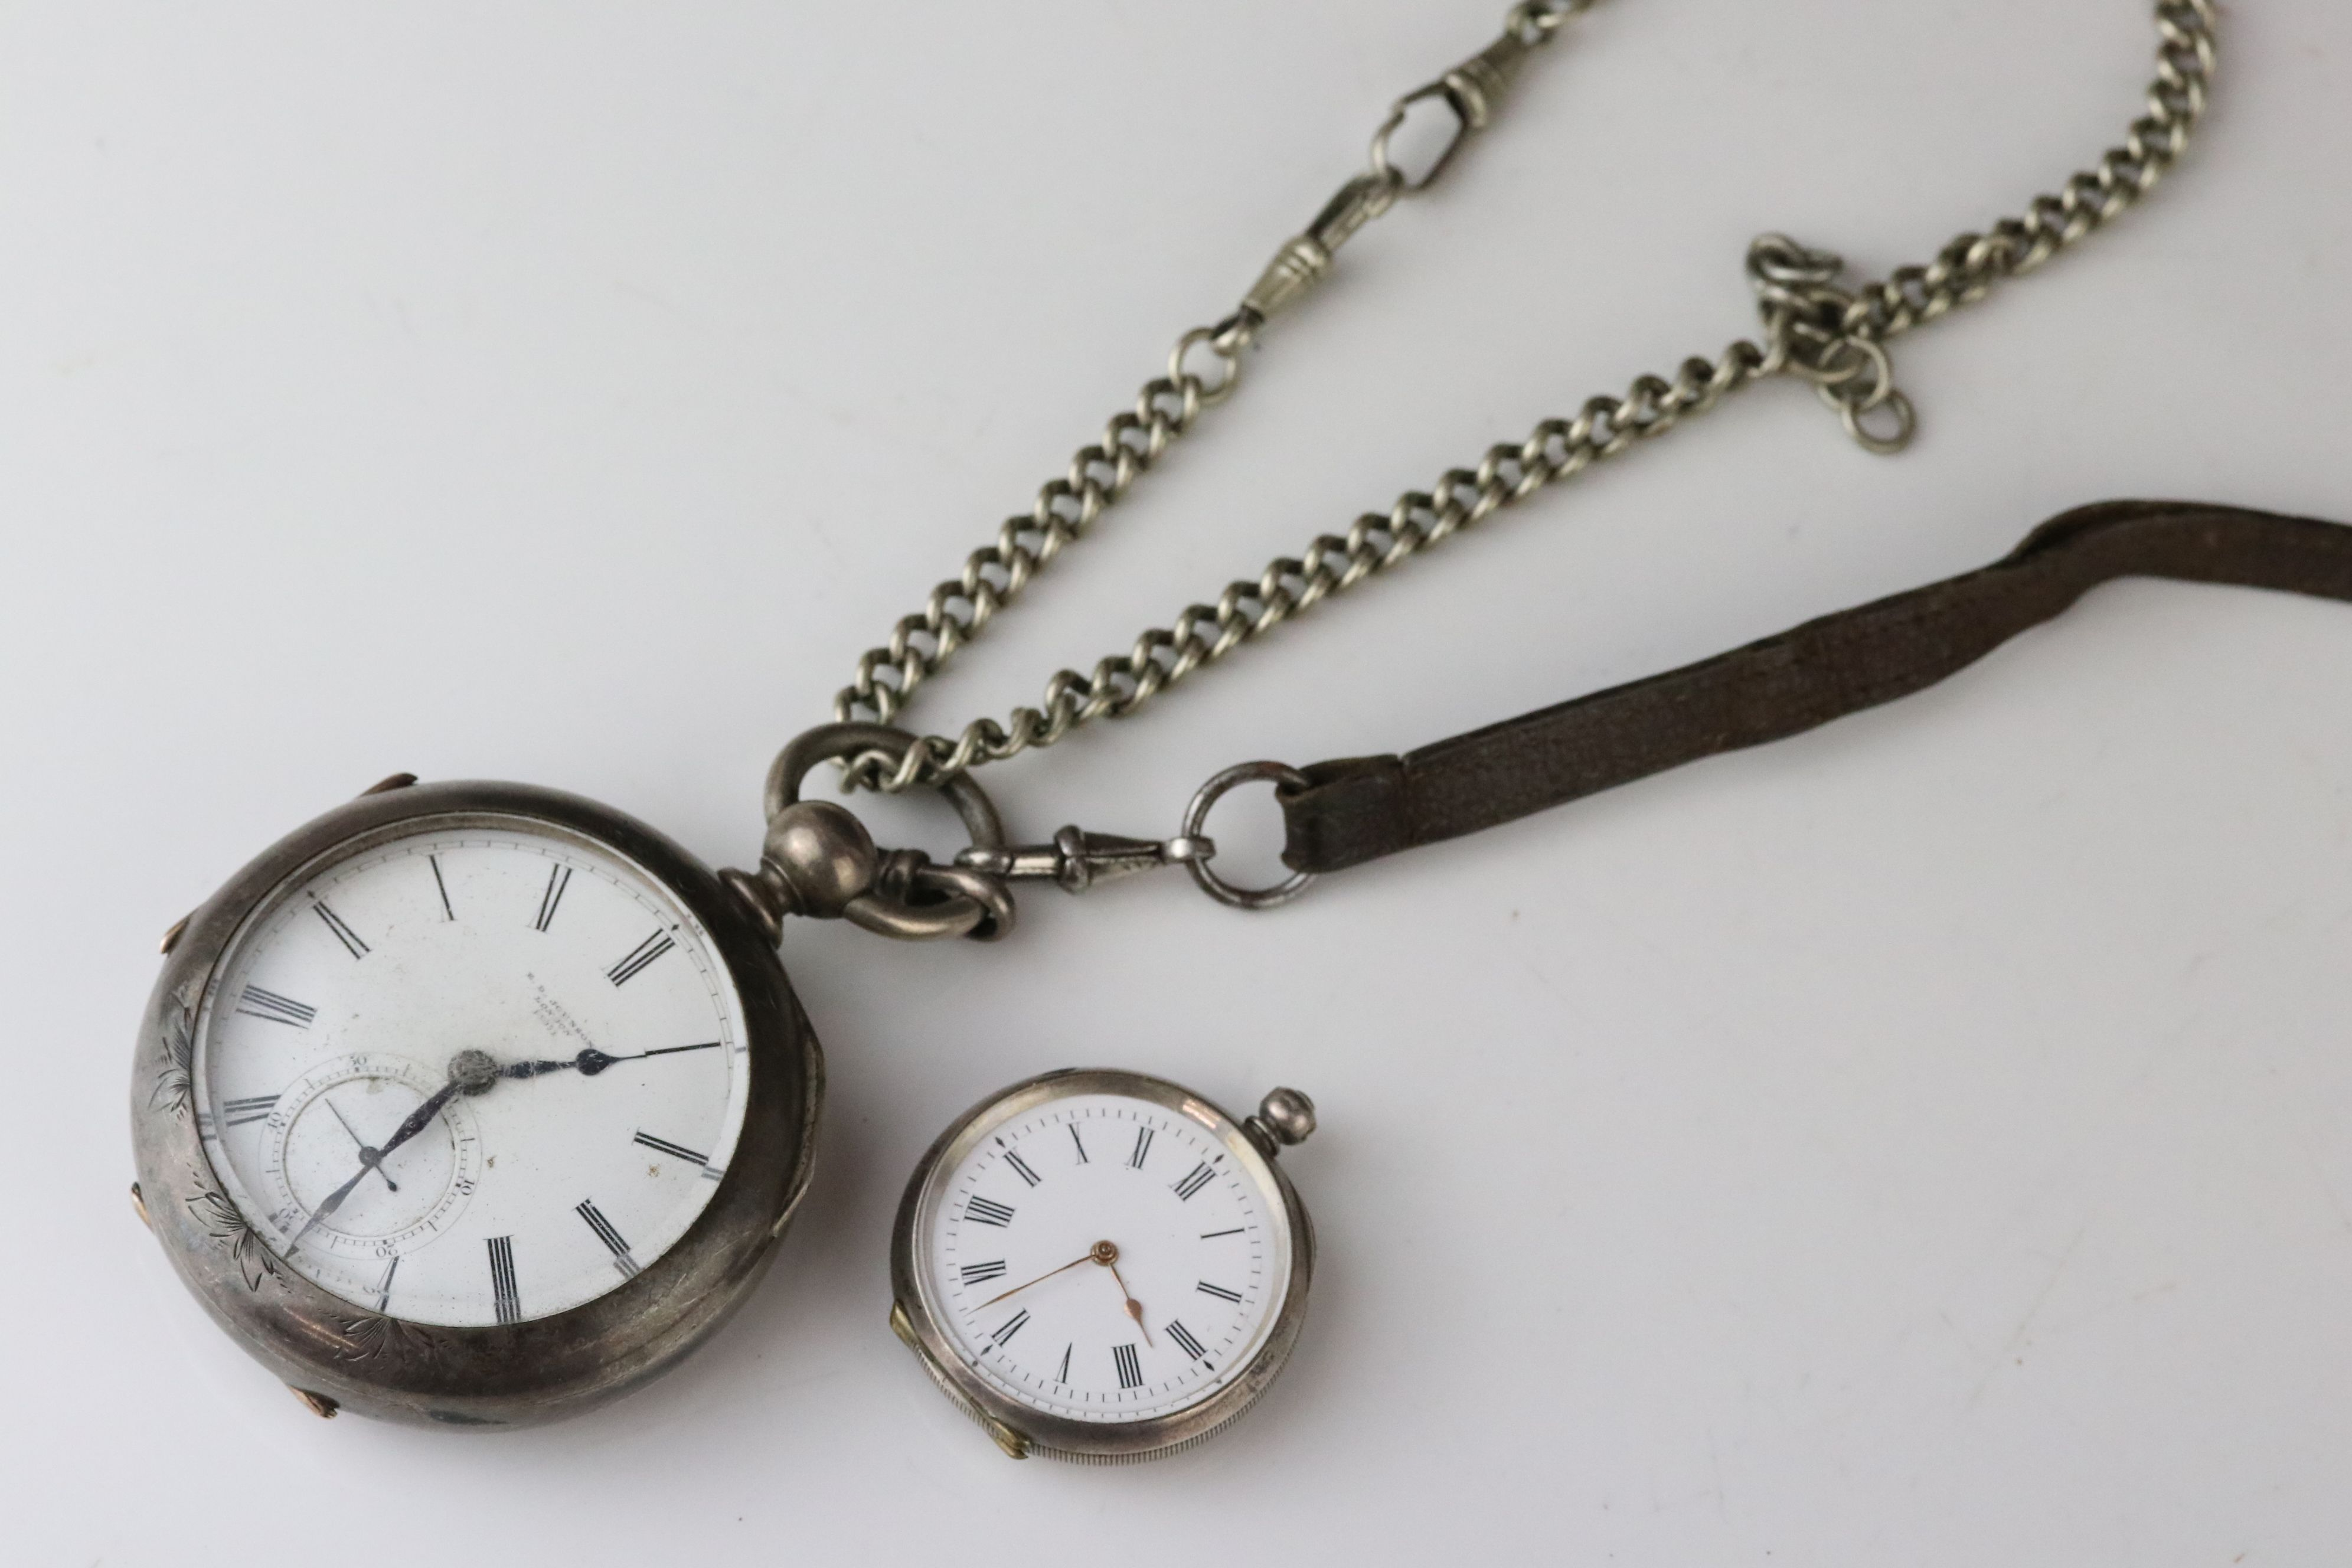 E D Johnson white metal key wind open face pocket watch, white enamel dial and subsidiary dial,